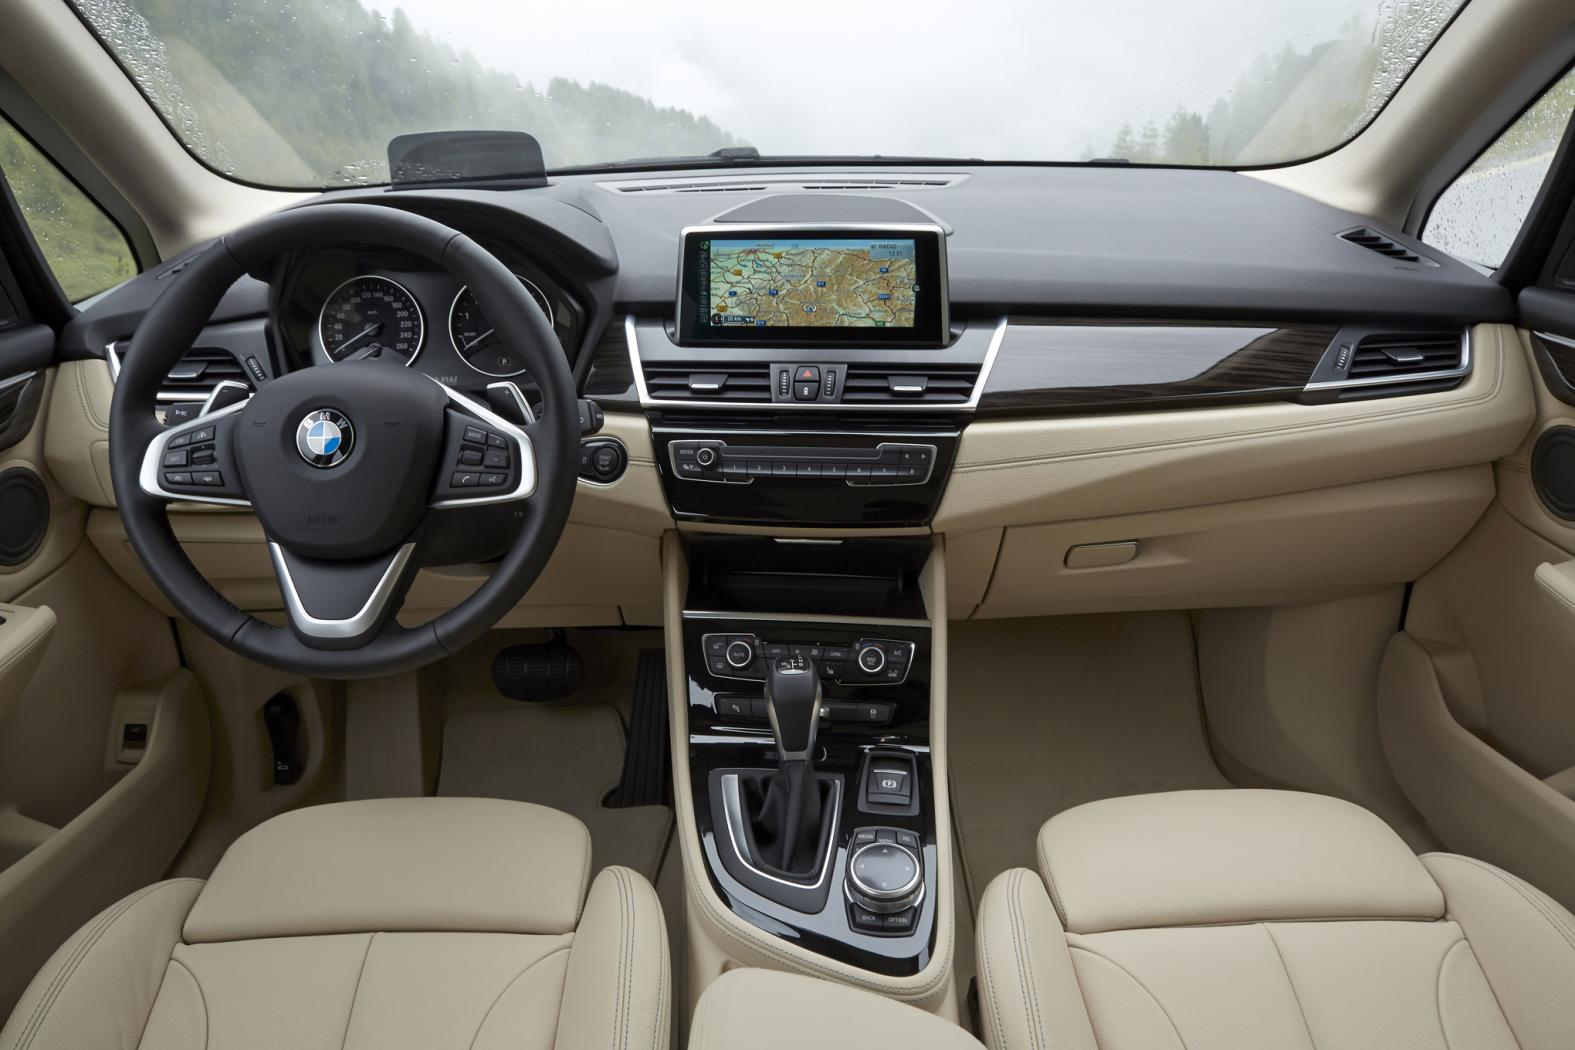 Interieur-BMW-Active-Tourer.jpeg